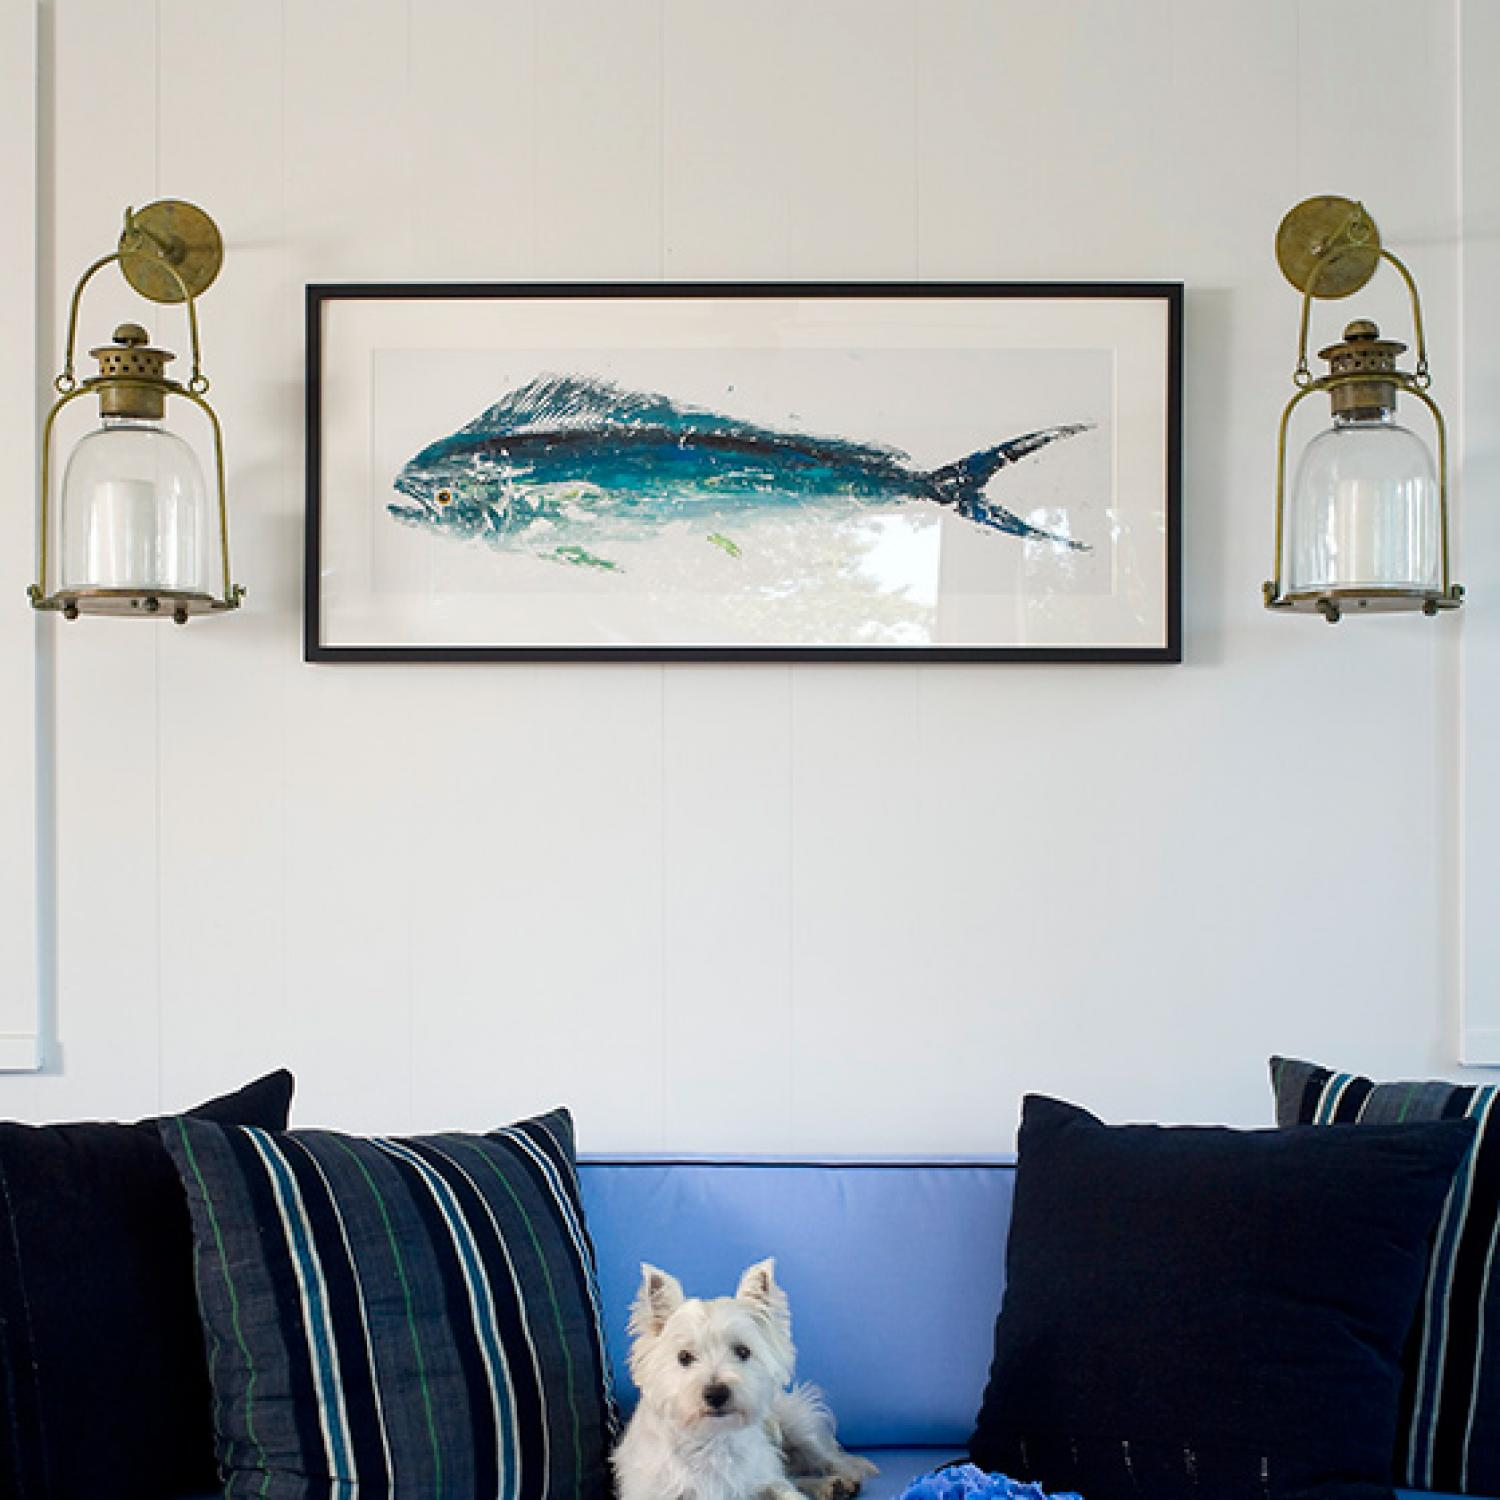 Decorating Ideas: Making a Pet-Friendly Home | Traditional Home